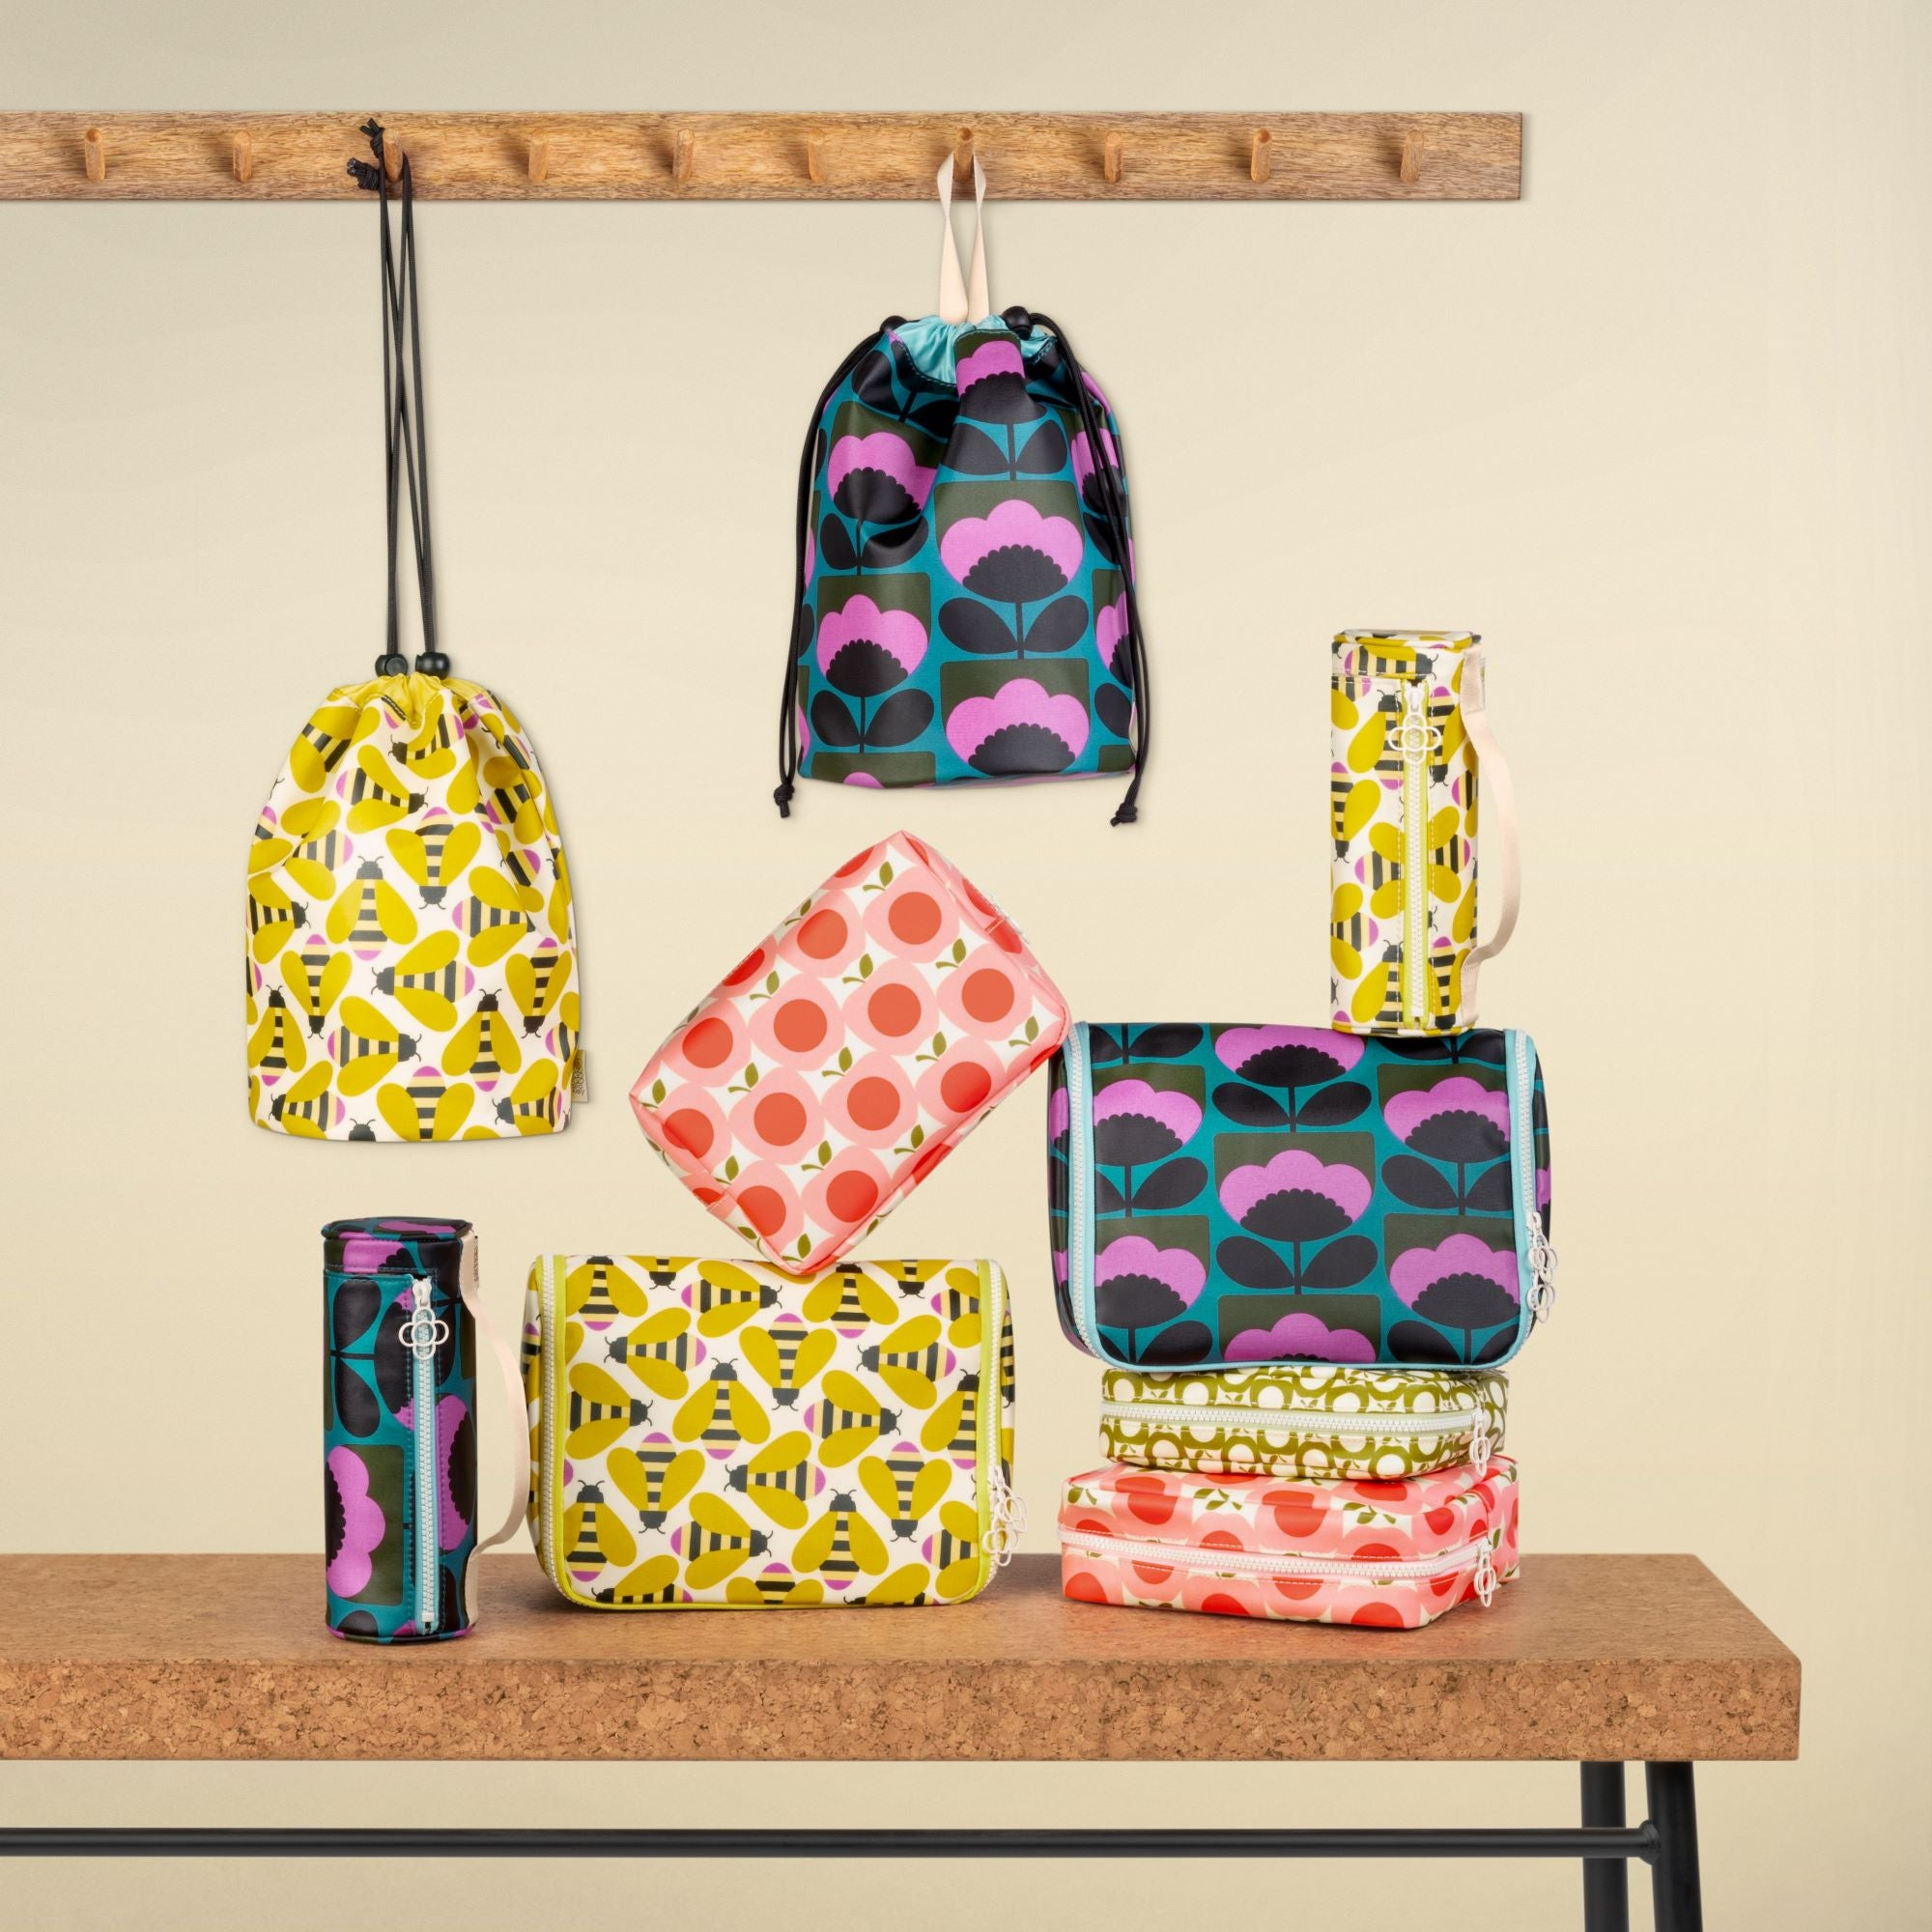 Get ready for Spring with these perfect travel accessories by Orla Kiely, featuring Orla's latest Busy Bee, Spring Blossom and Apple designs. We also have a many other beautiful designs available. Take a good look at our site.